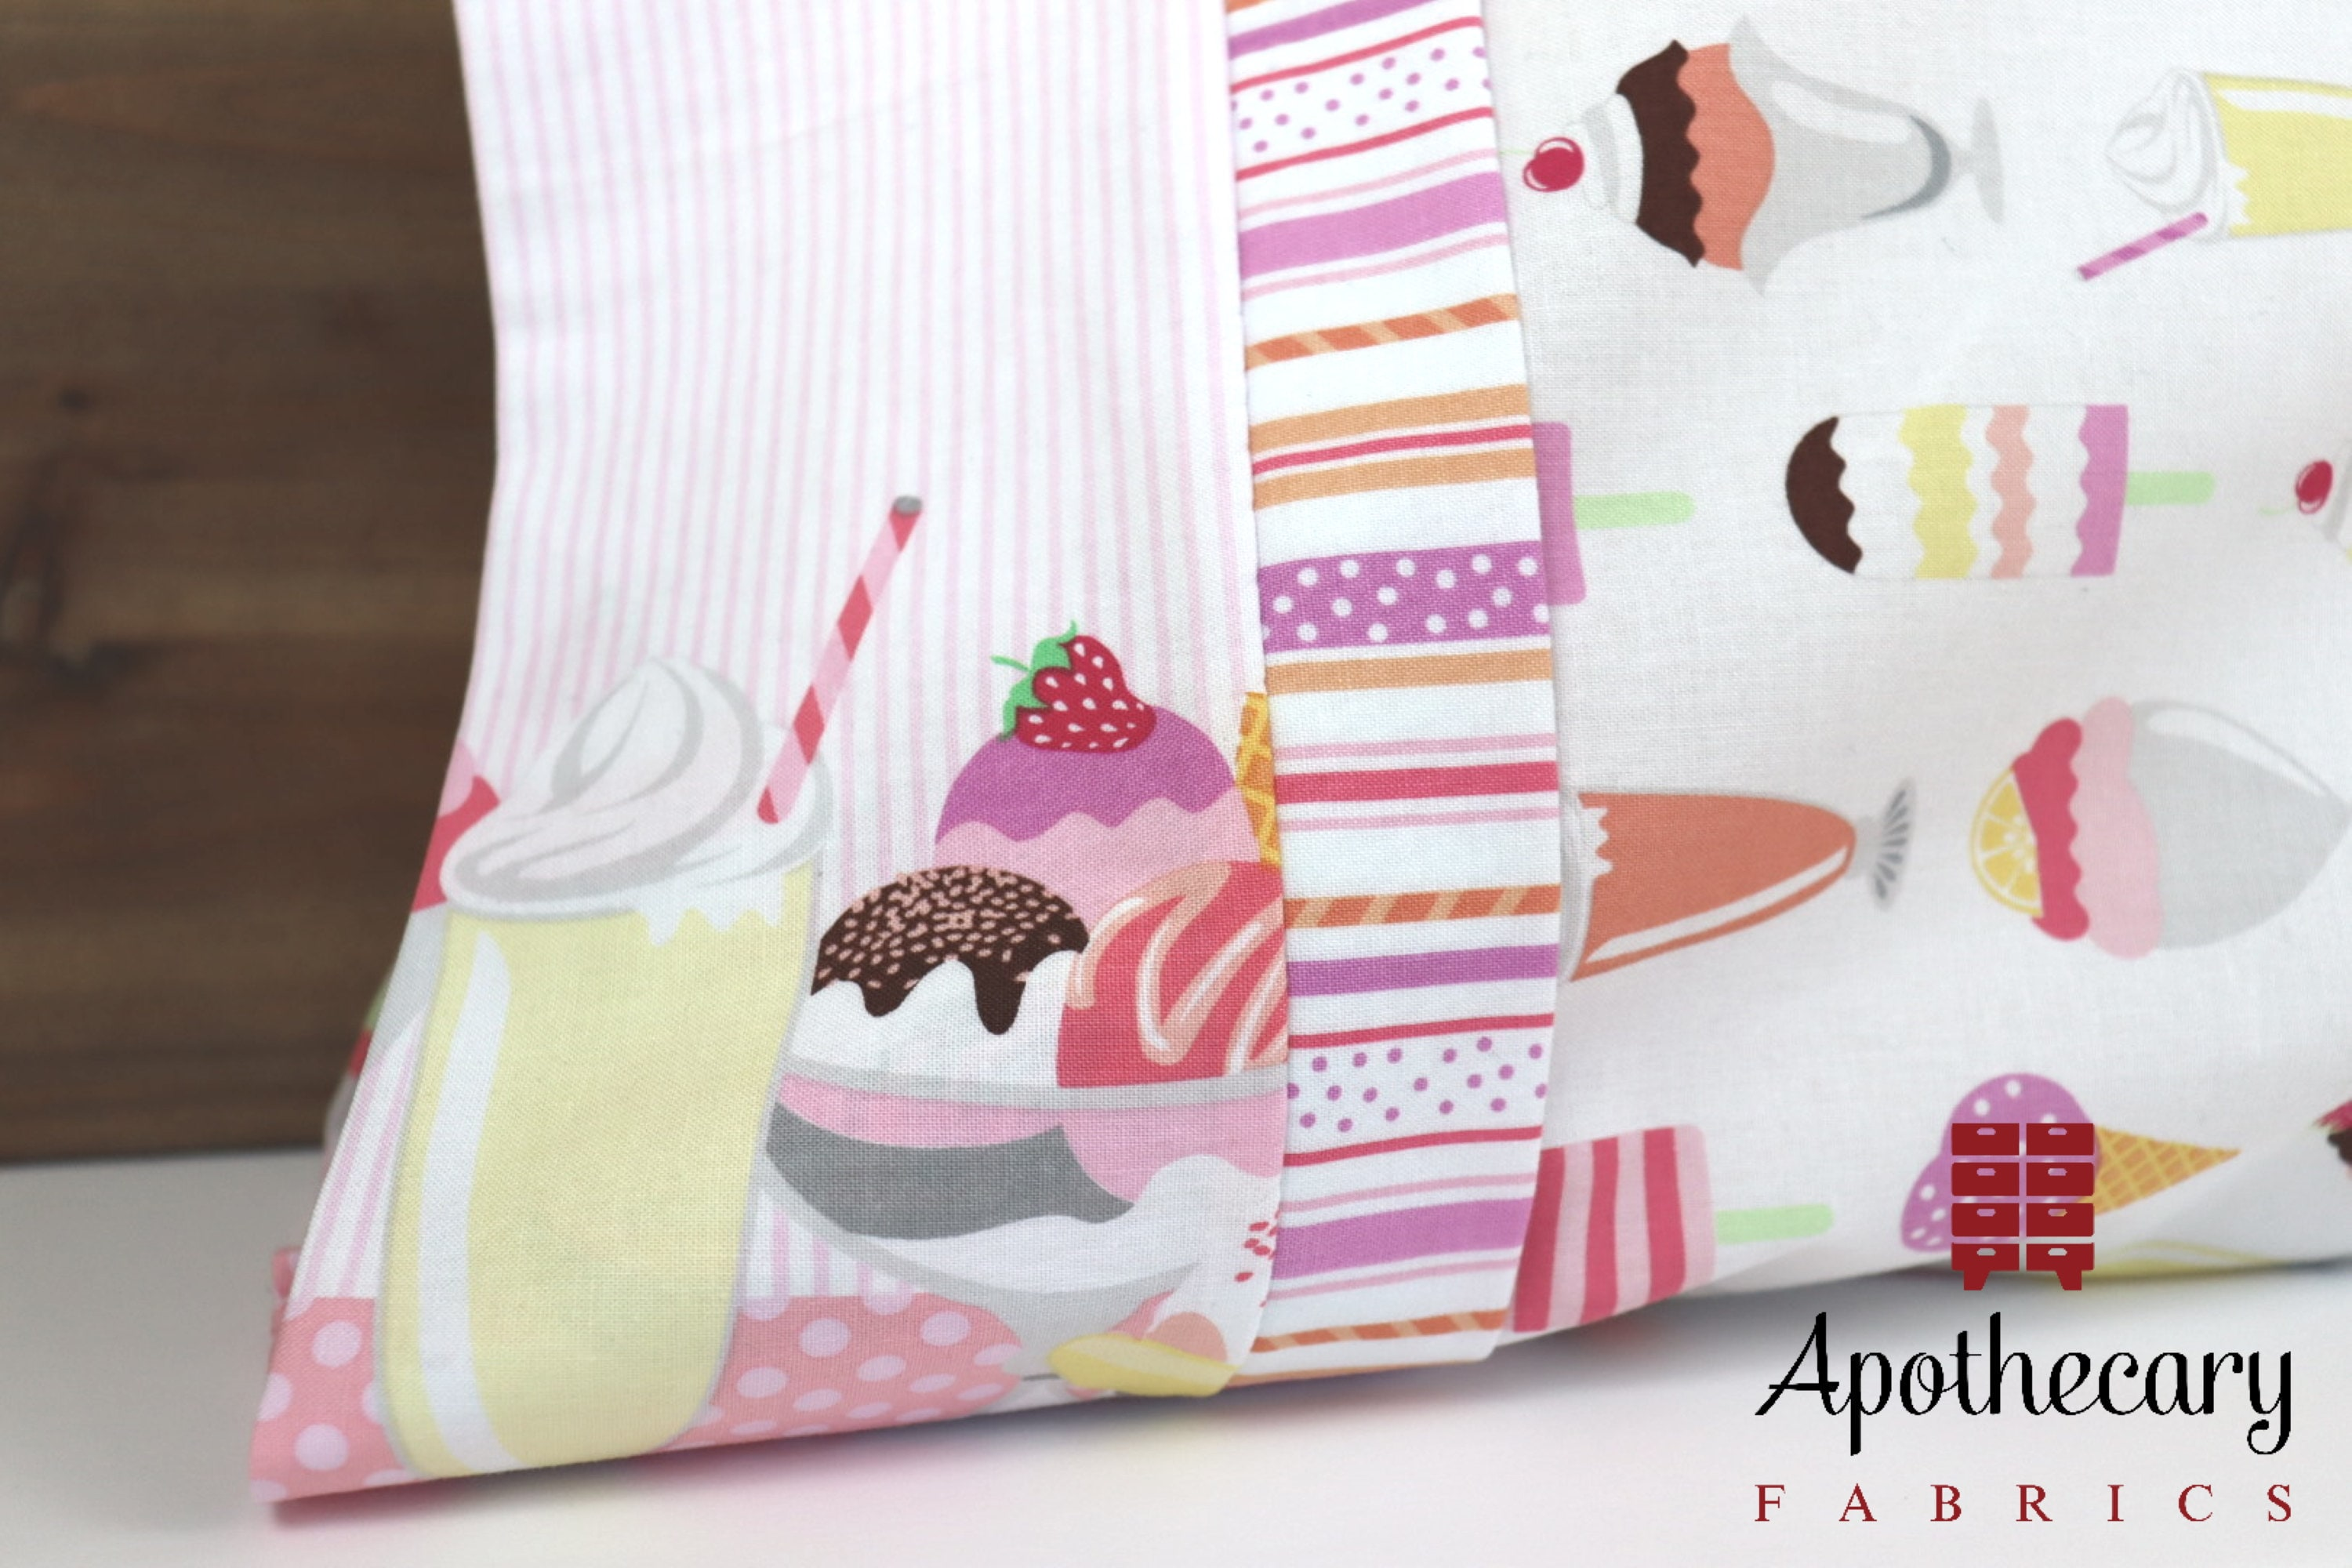 The cuff, accent piece and main body of the Perfect Pillowcase by Apothecary Fabrics.